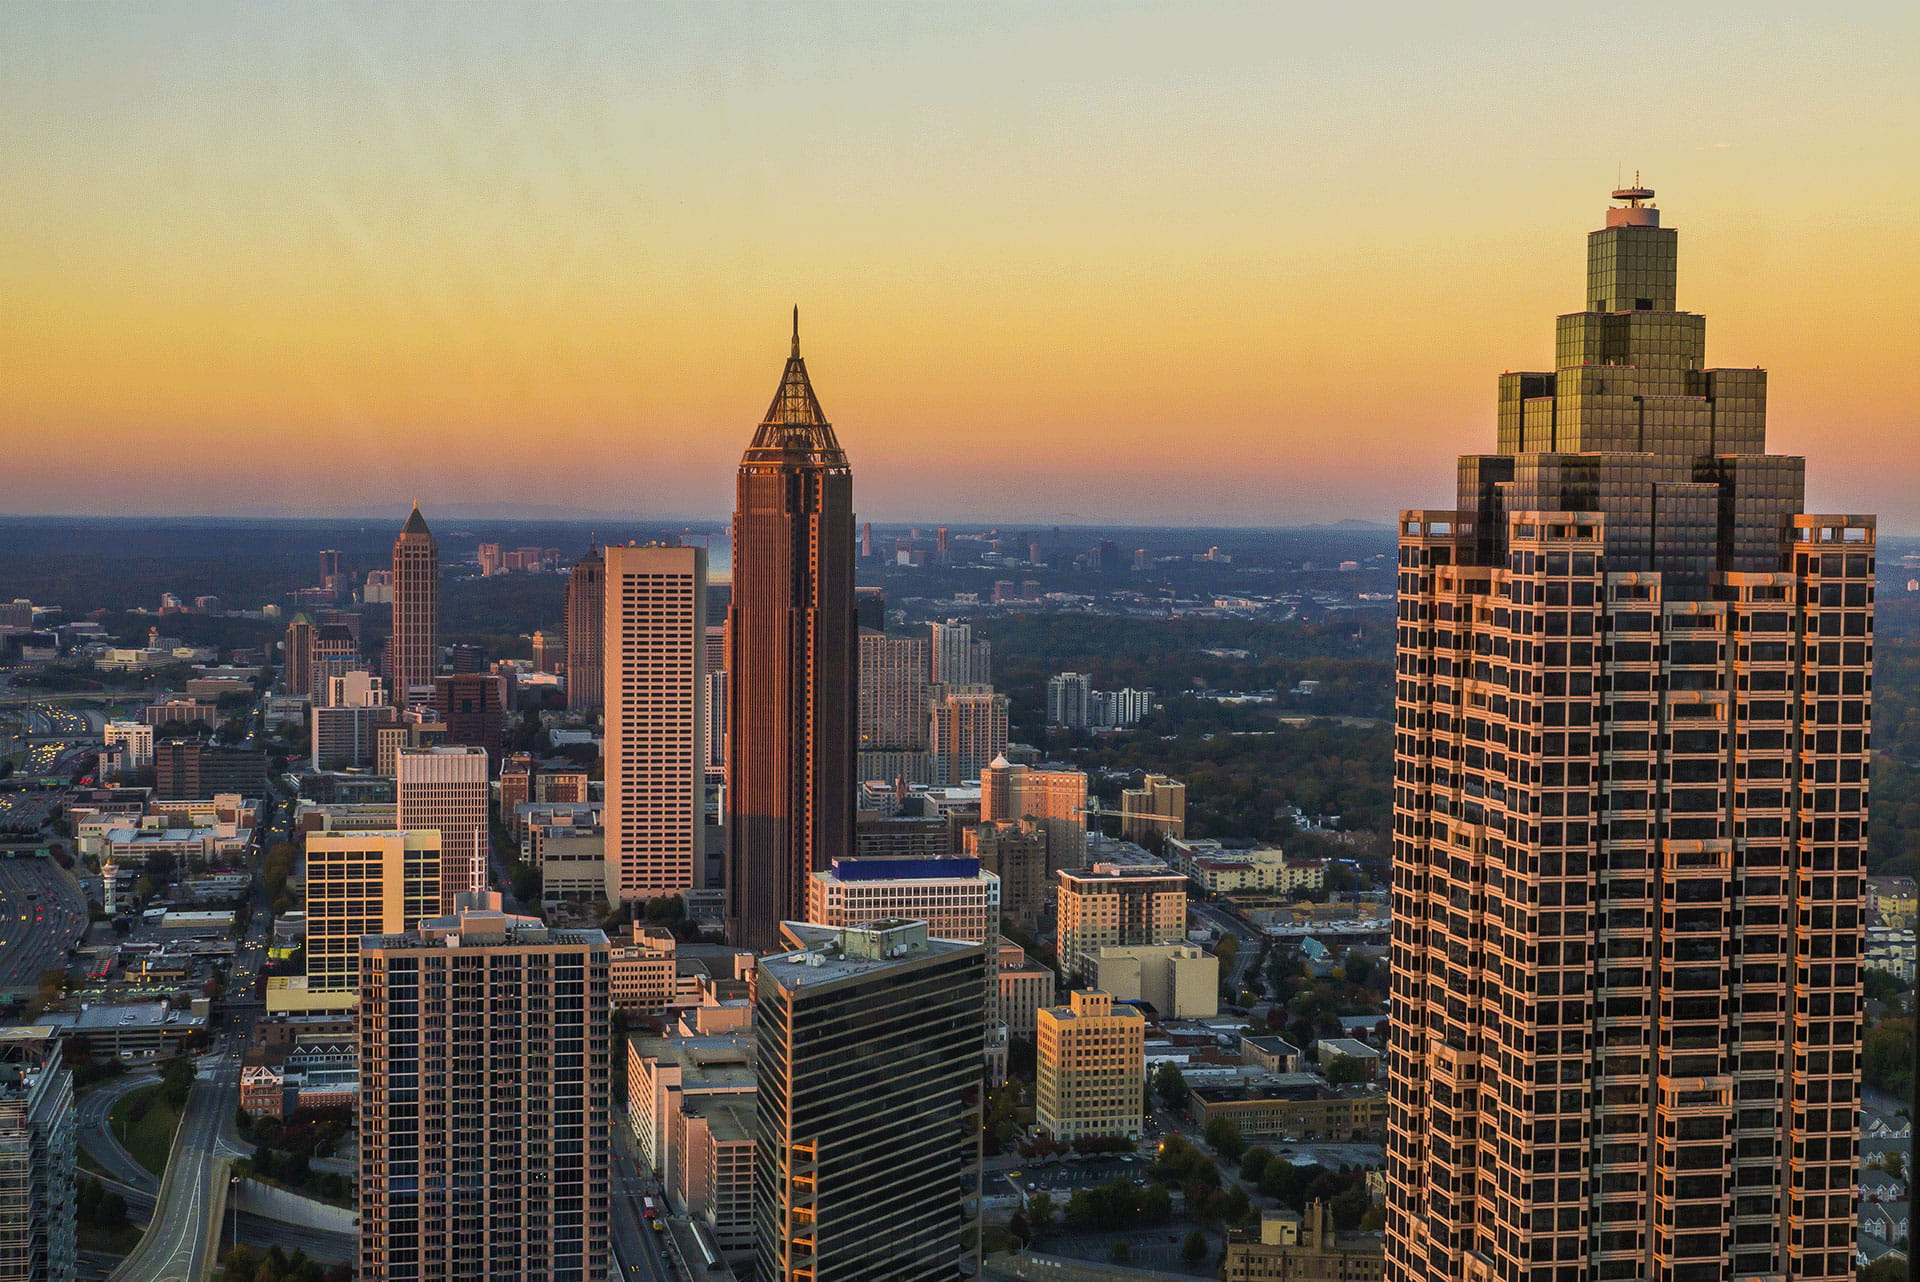 Aerial view of Atlanta at Sunset